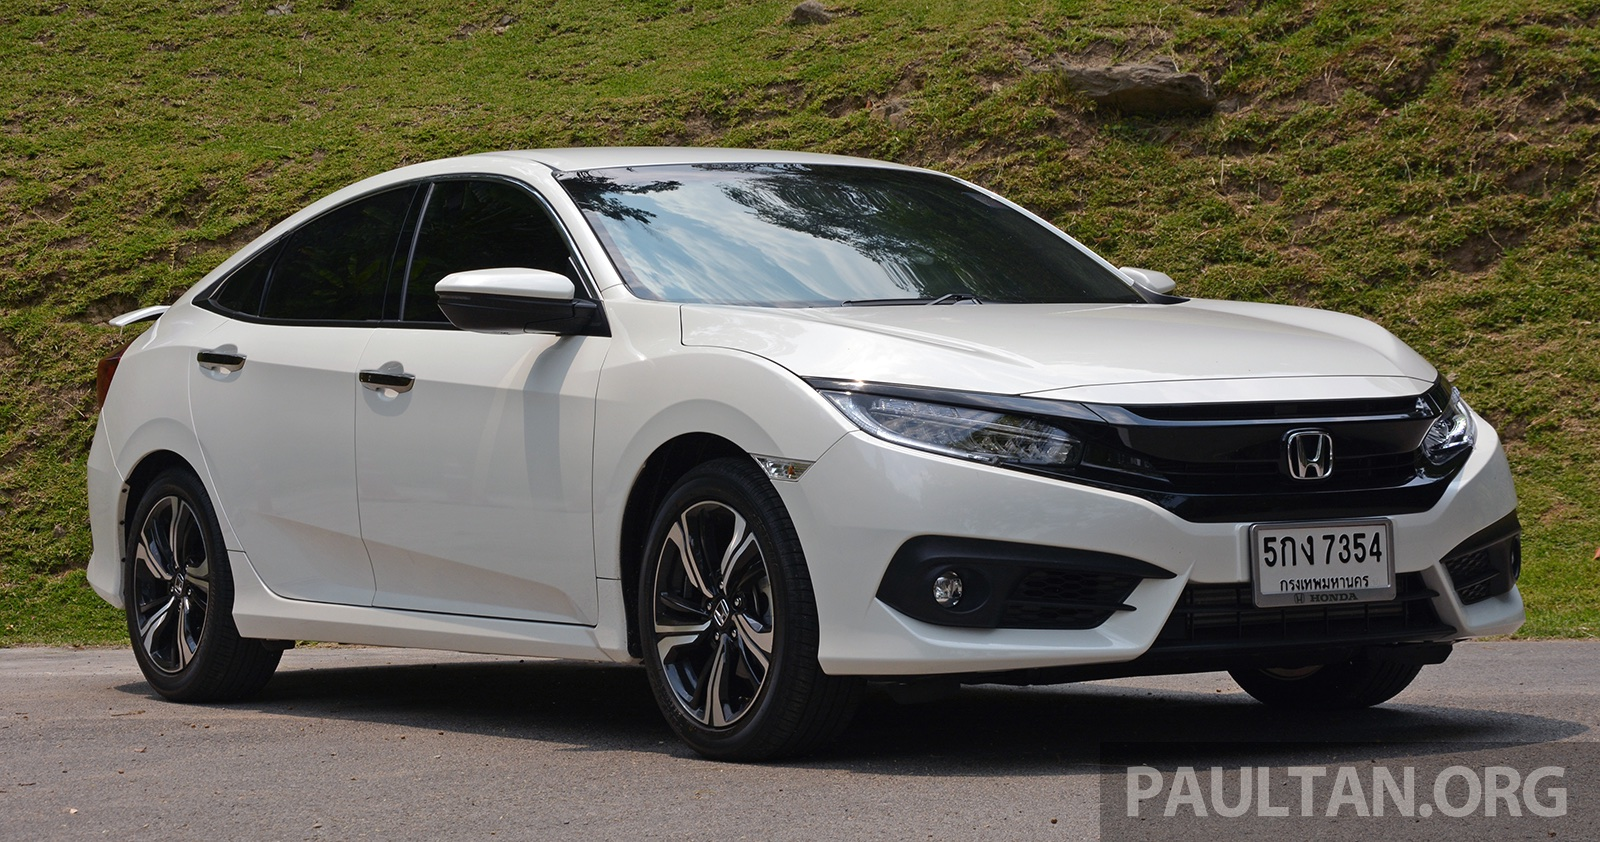 2016 honda civic to arrive in malaysia in q2 2016 to be previewed at miecc from may 20 to 22. Black Bedroom Furniture Sets. Home Design Ideas